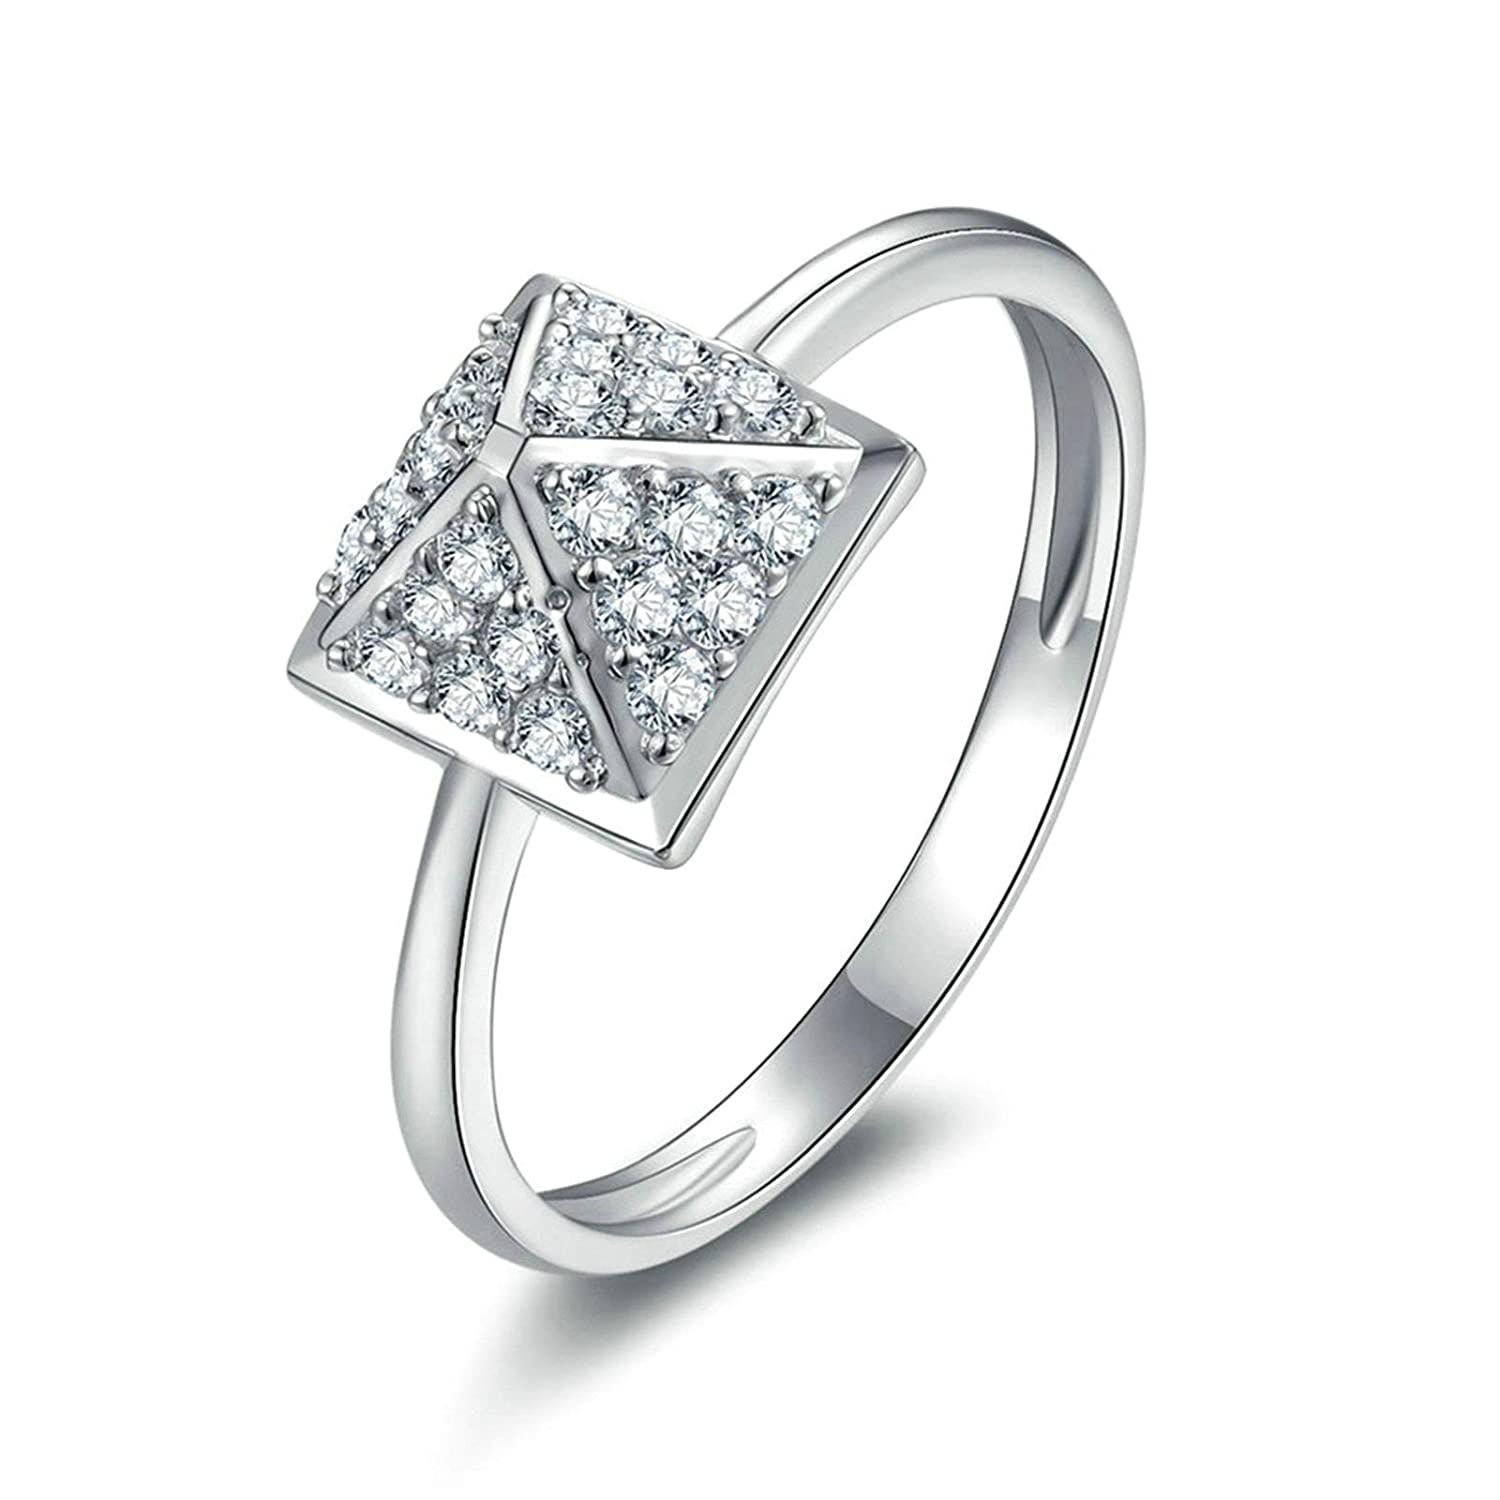 2ad27c2f03525 Amazon.com: Aooaz Ring for Wedding Silver Material Ring Stone Square ...